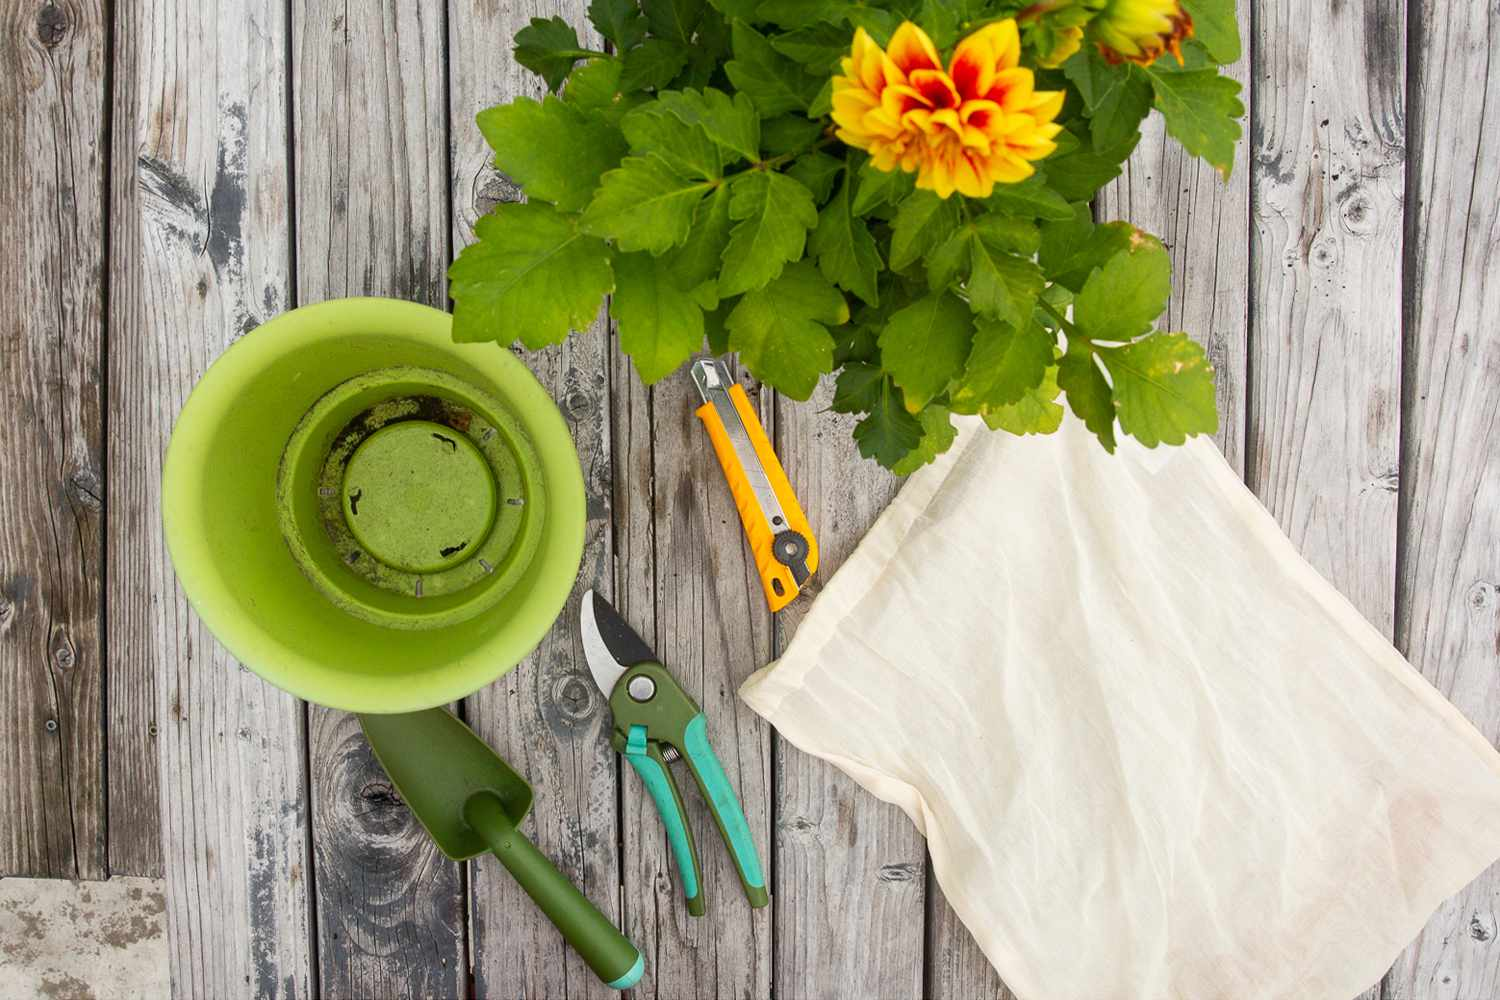 Materials and tools to dig and divide dahlia plants on wooden surface